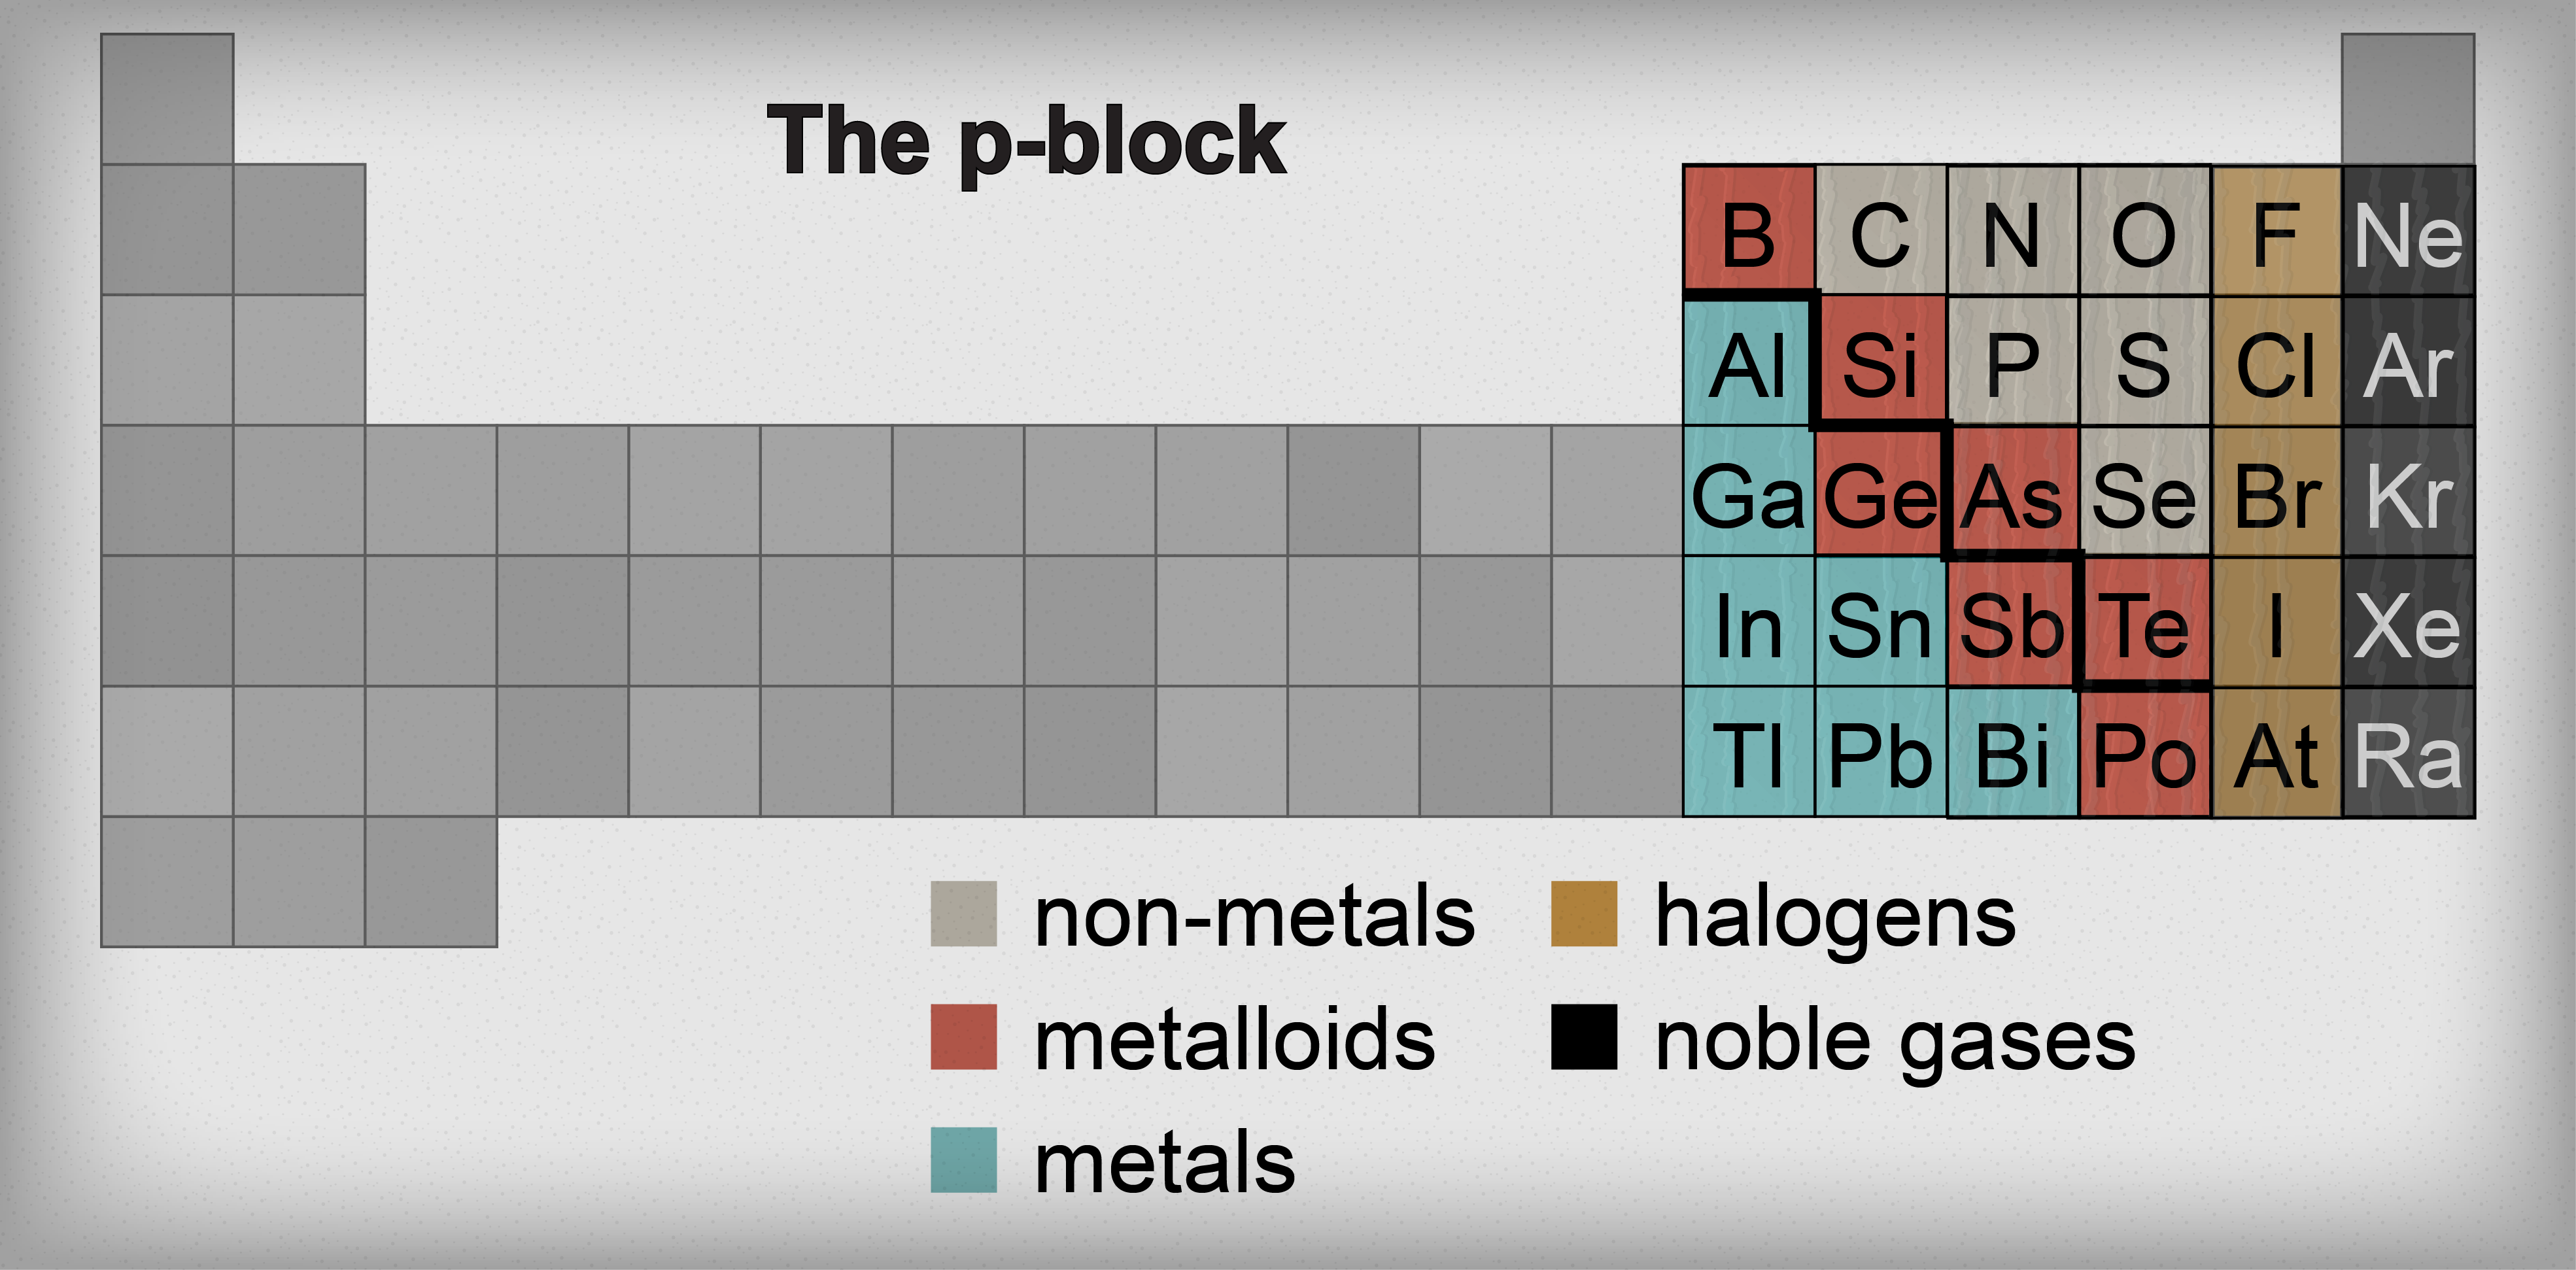 Chemistry metals metalloids and non metals shmoop chemistry our next stop on this chemistry train o fun is the p block in this section dividing elements into columns is so 2000 and late gamestrikefo Gallery